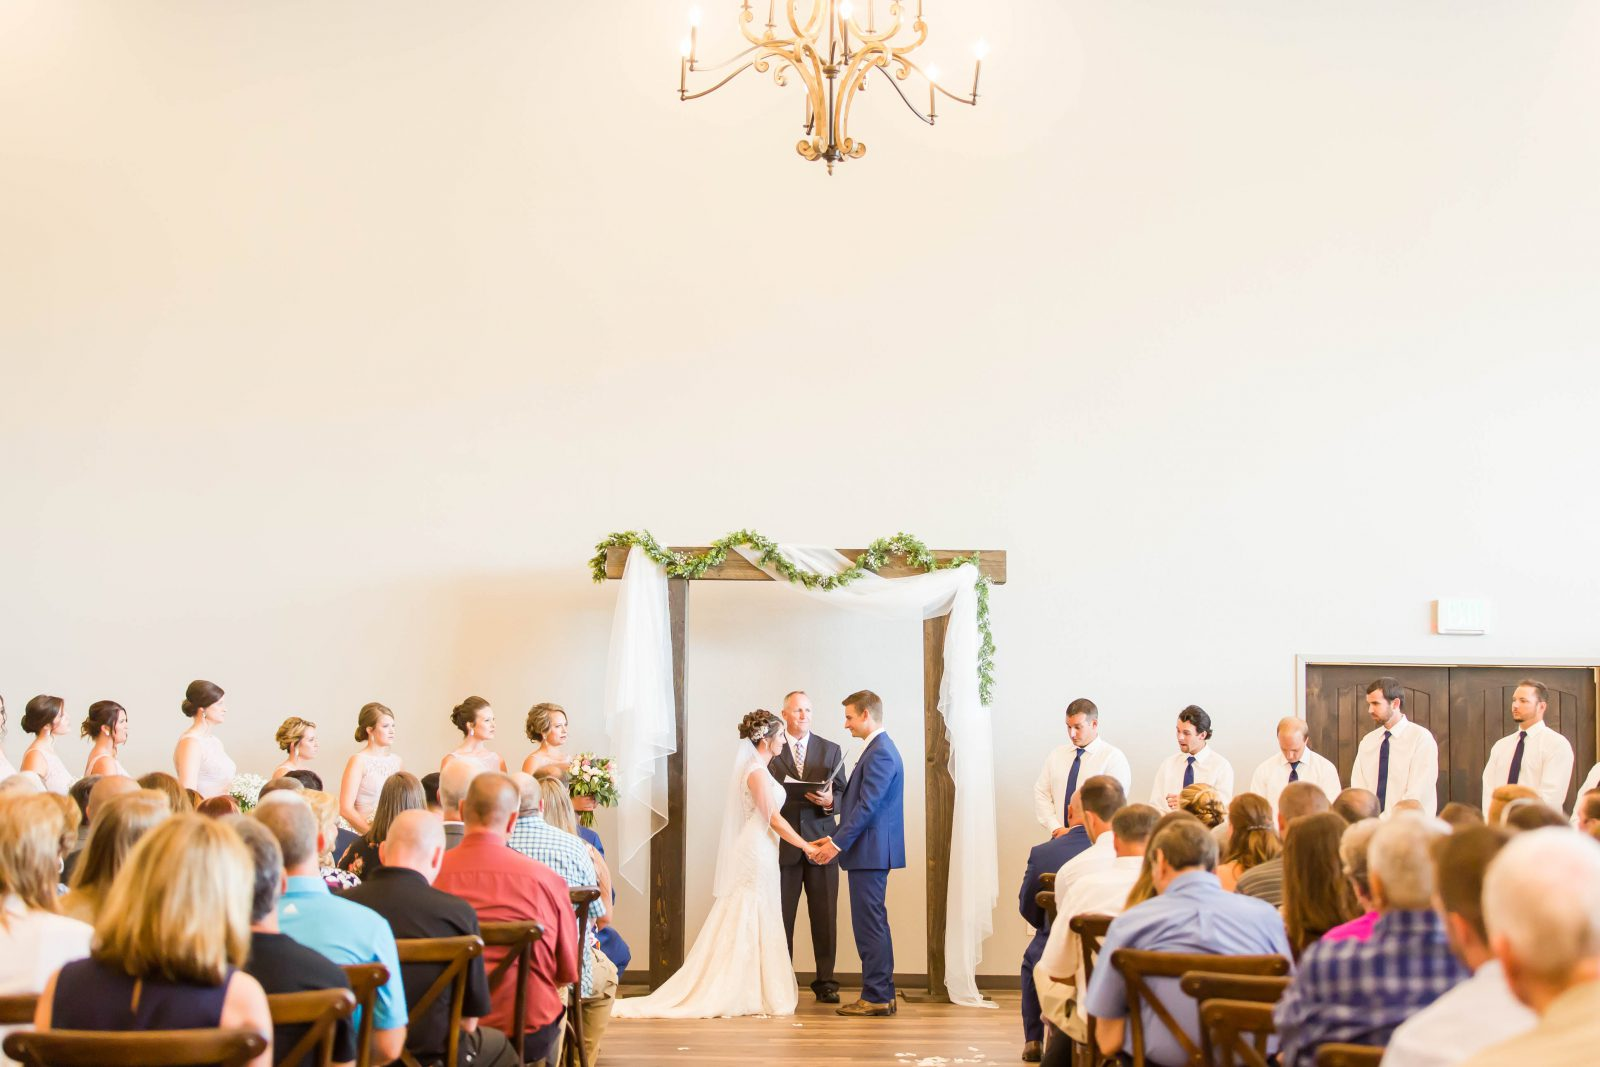 encore-hall-wedding-berlin-ohio-loren-jackson-photography-90